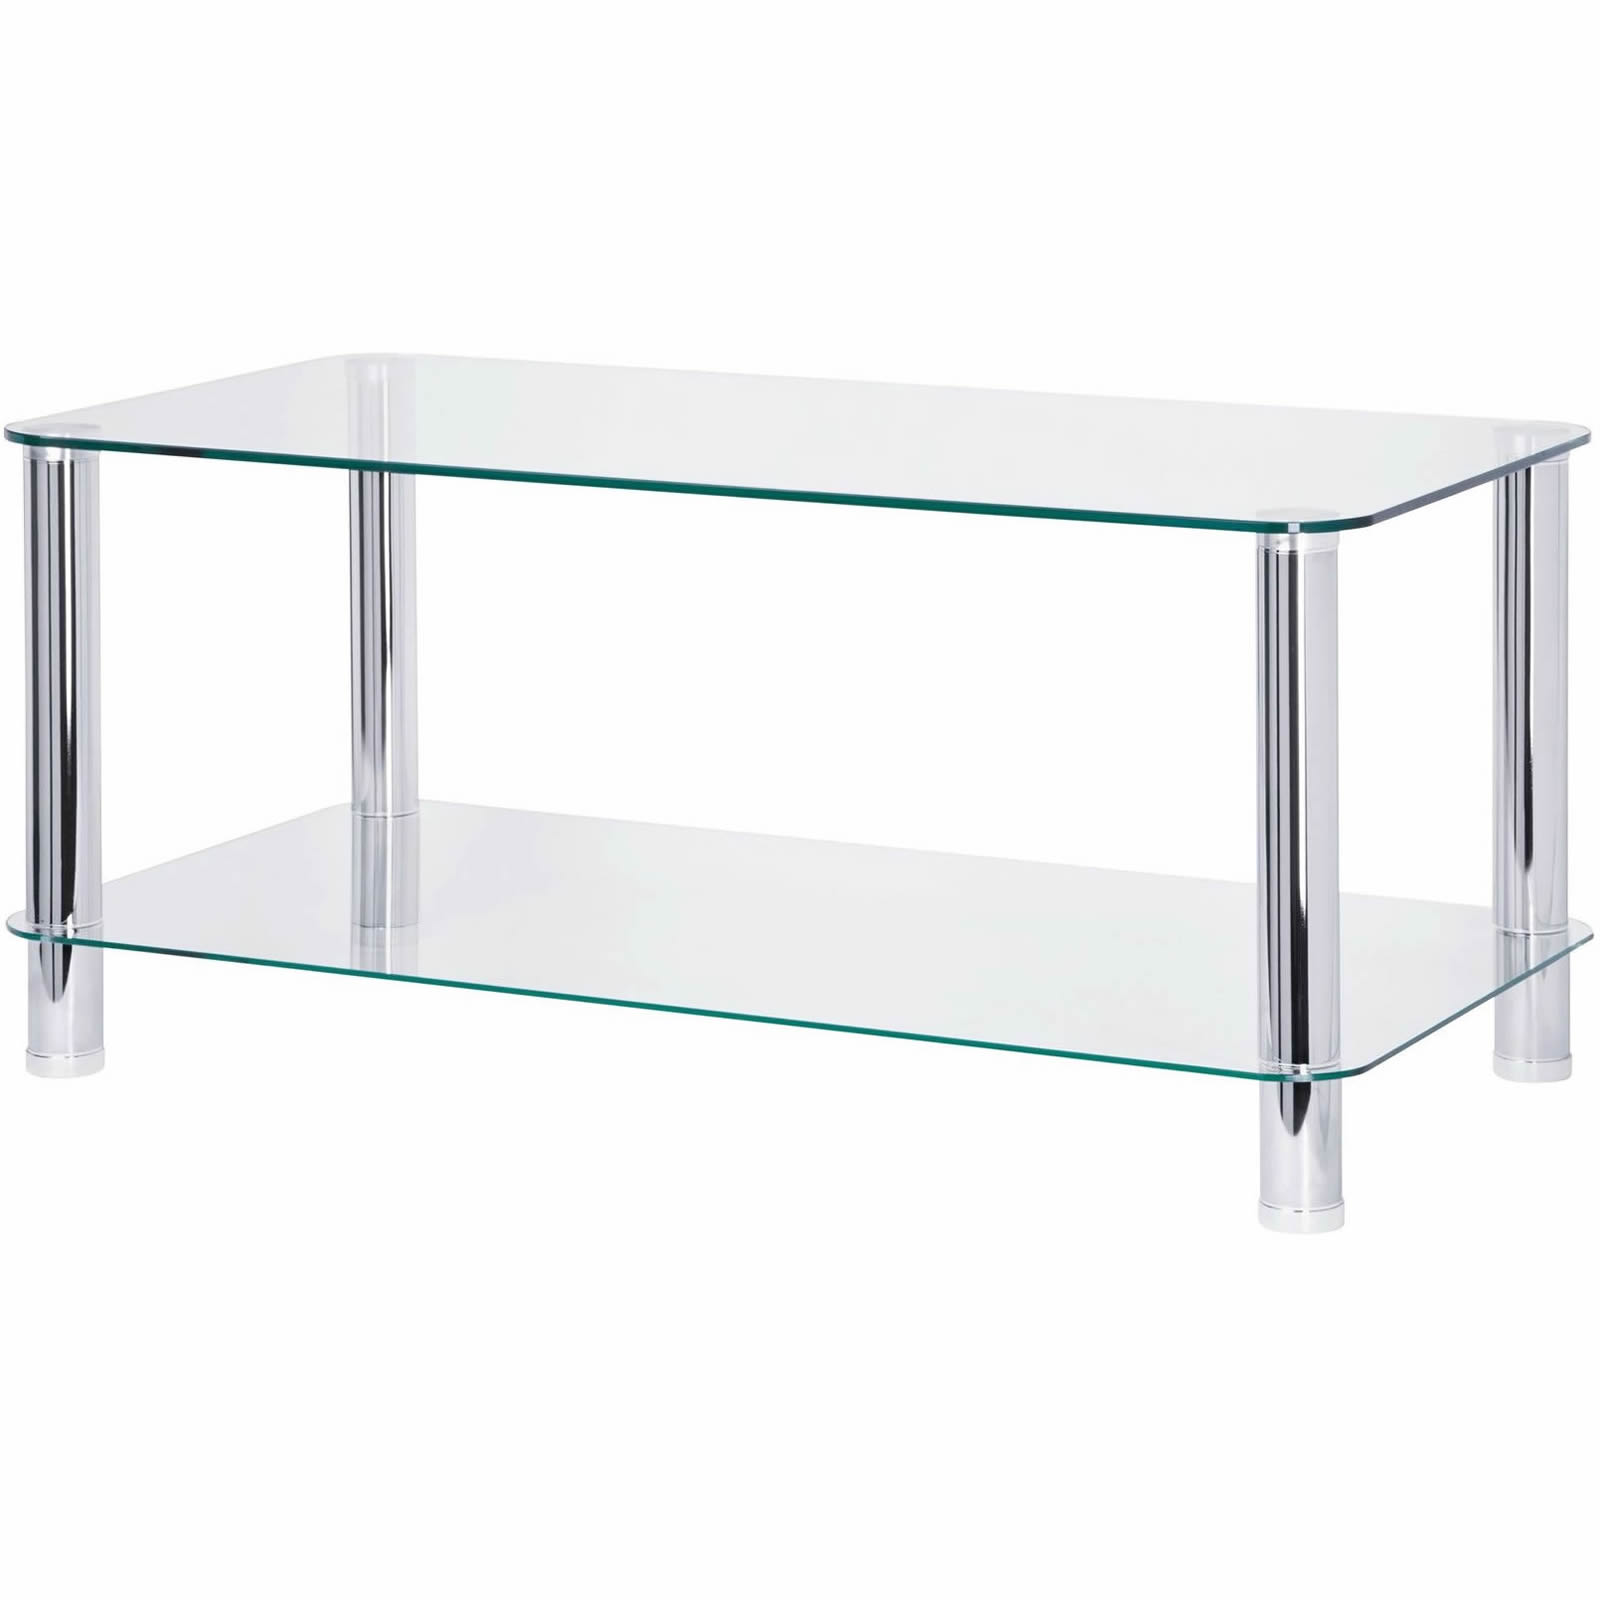 glass side tables clear end outdoor storage trunk waterproof kmart kitchen curtains bedside table lamps macys furniture dining room lazy boy sofas and recliners london ontario